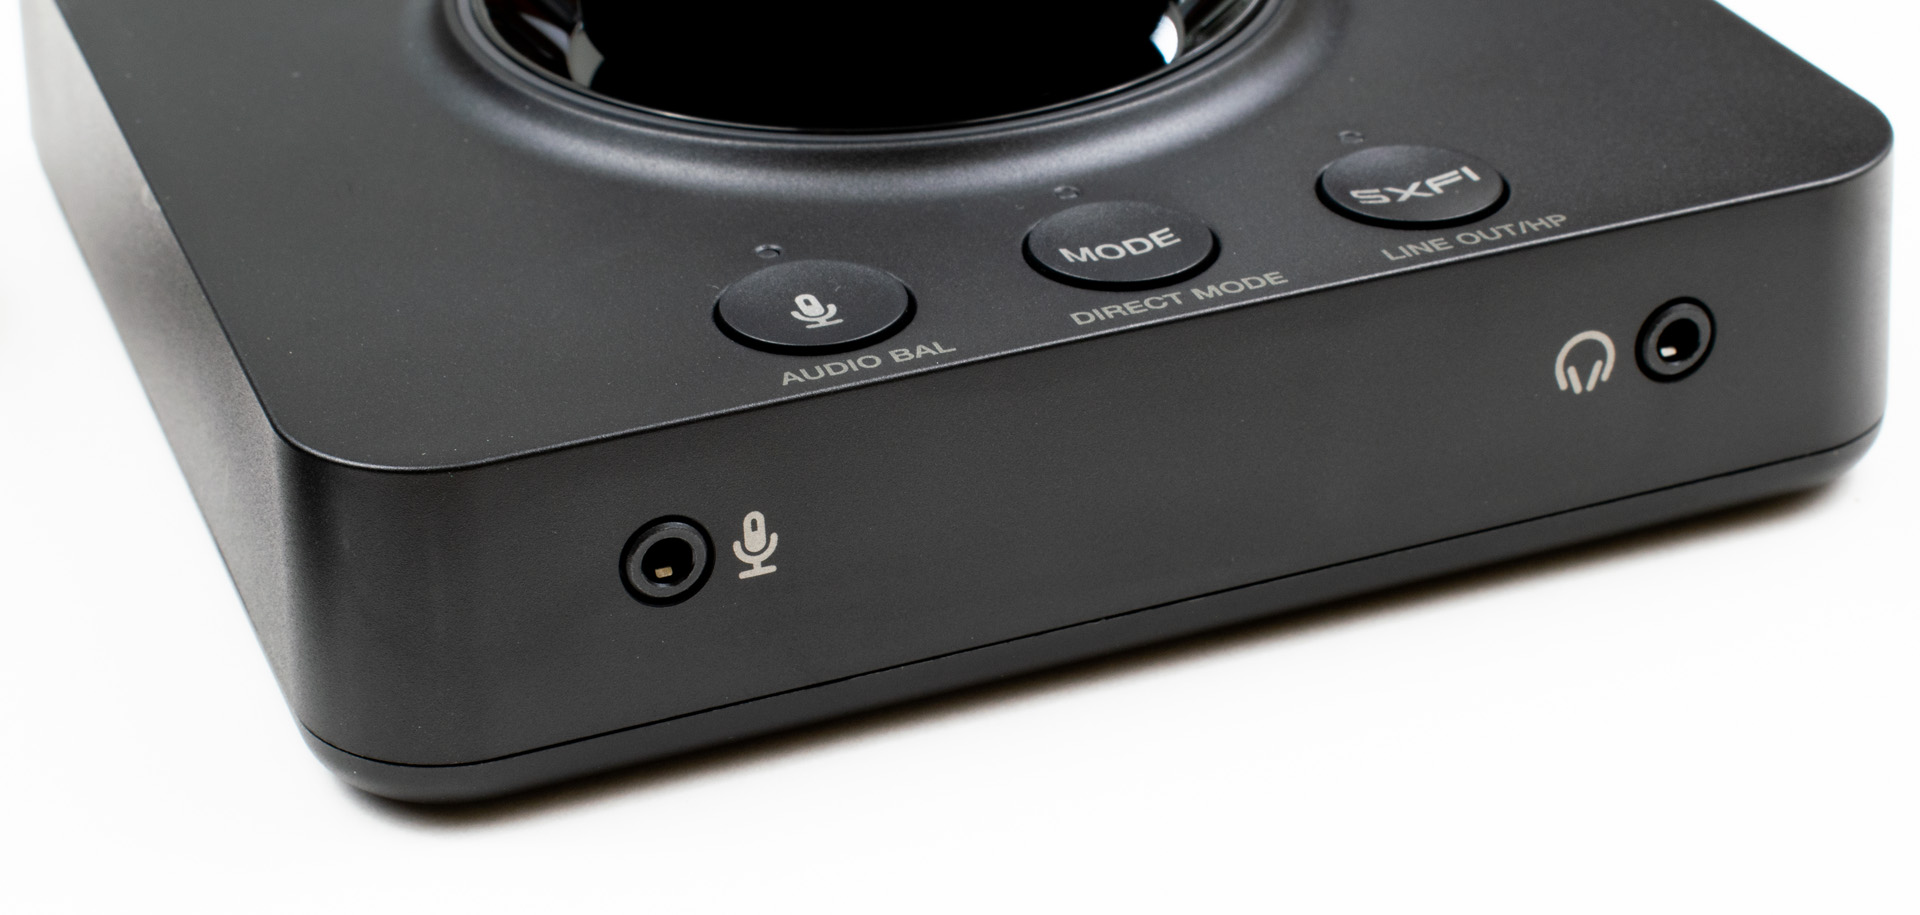 Sound Blaster X3 Review: Portable Super X-Fi Audio For PCs And Consoles